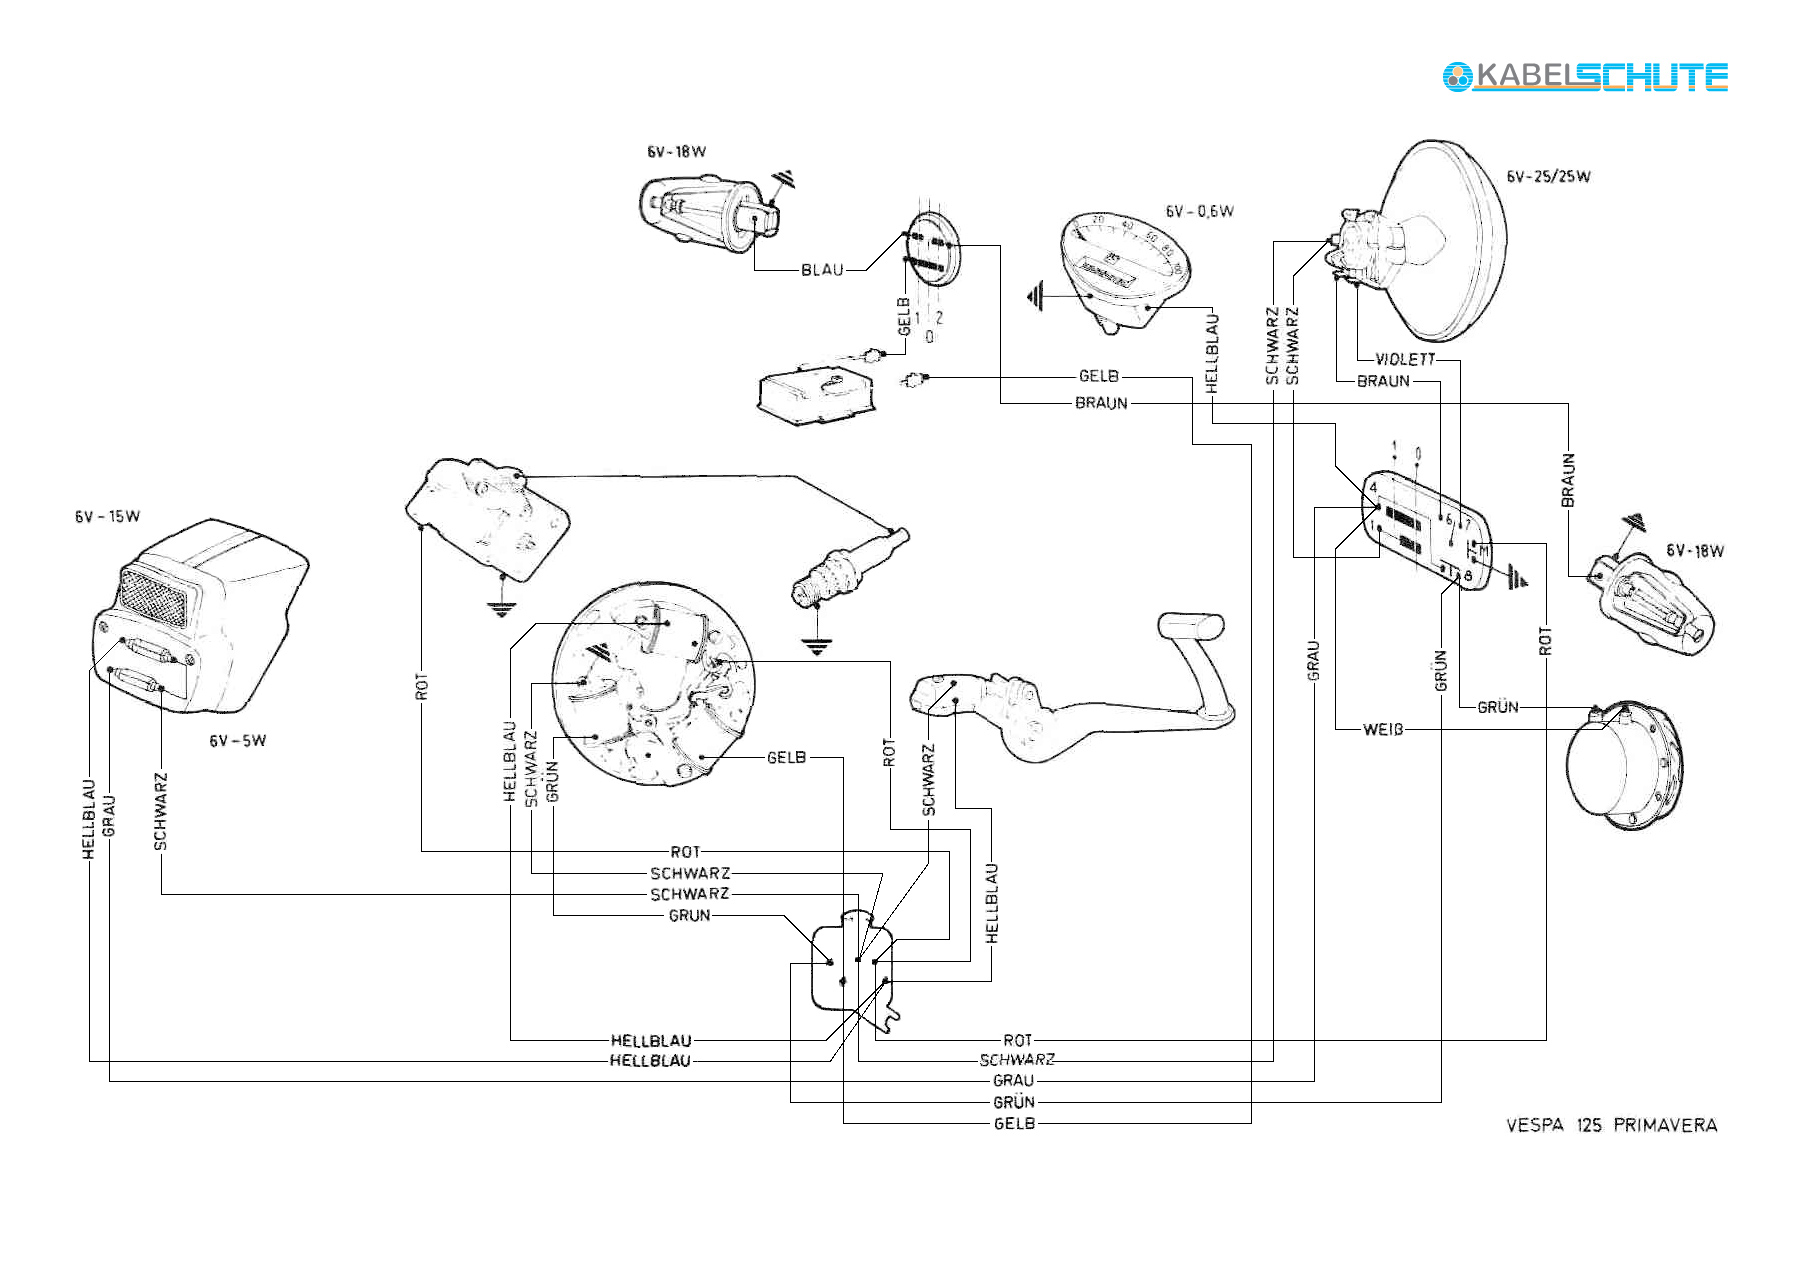 hight resolution of wiring diagrams wiring diagrams diagram vespa